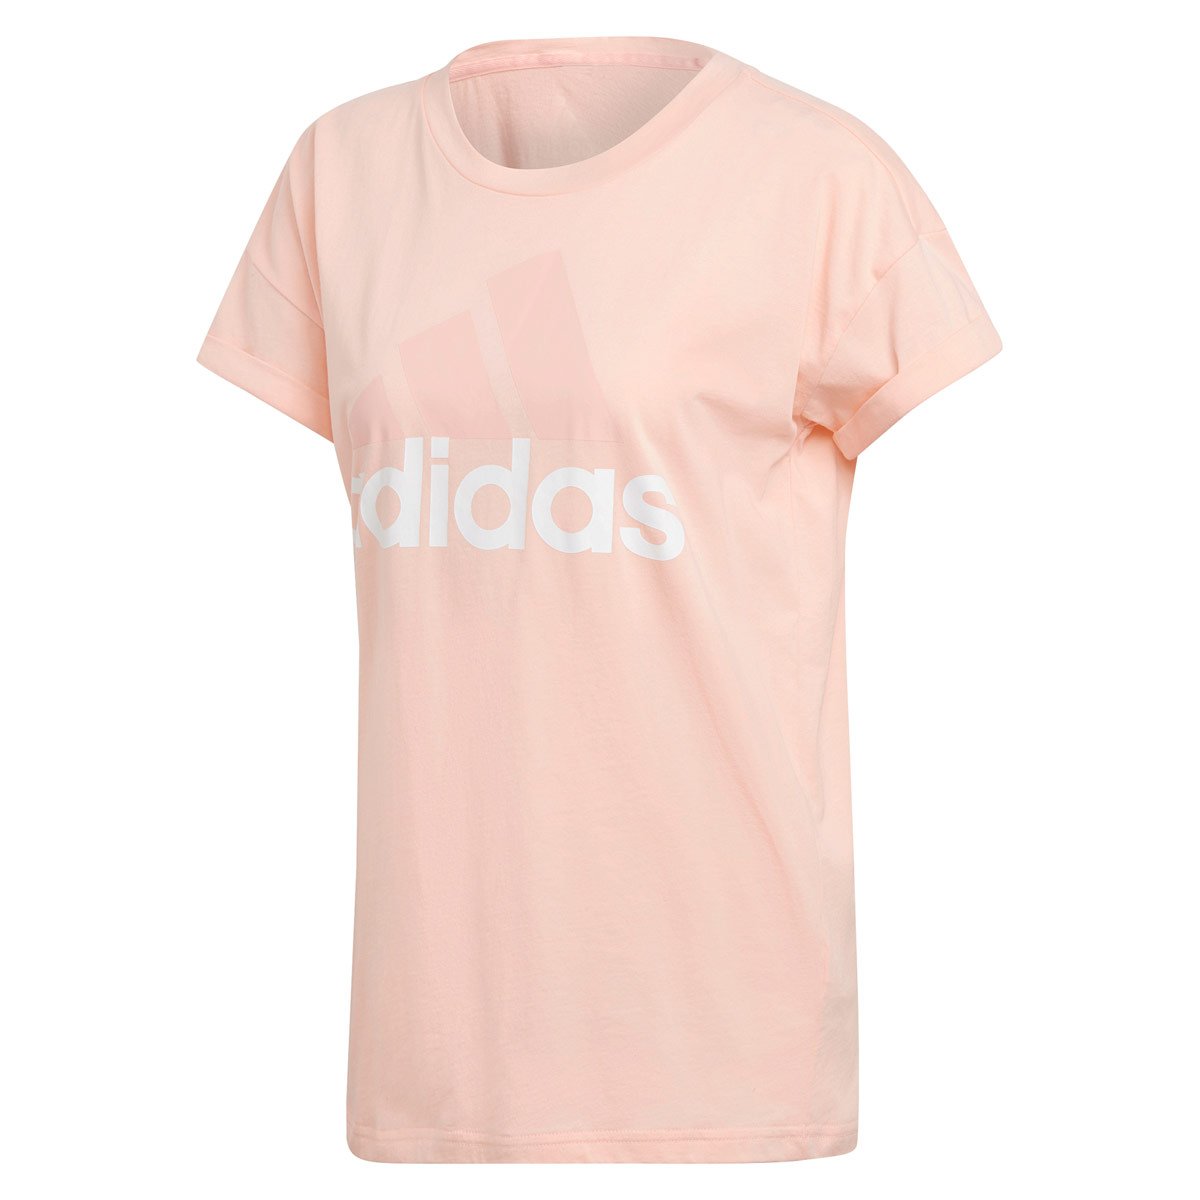 adidas Essentials Linear Loose Tee - Fitness tops for Women - Pink ... 970a5986ae